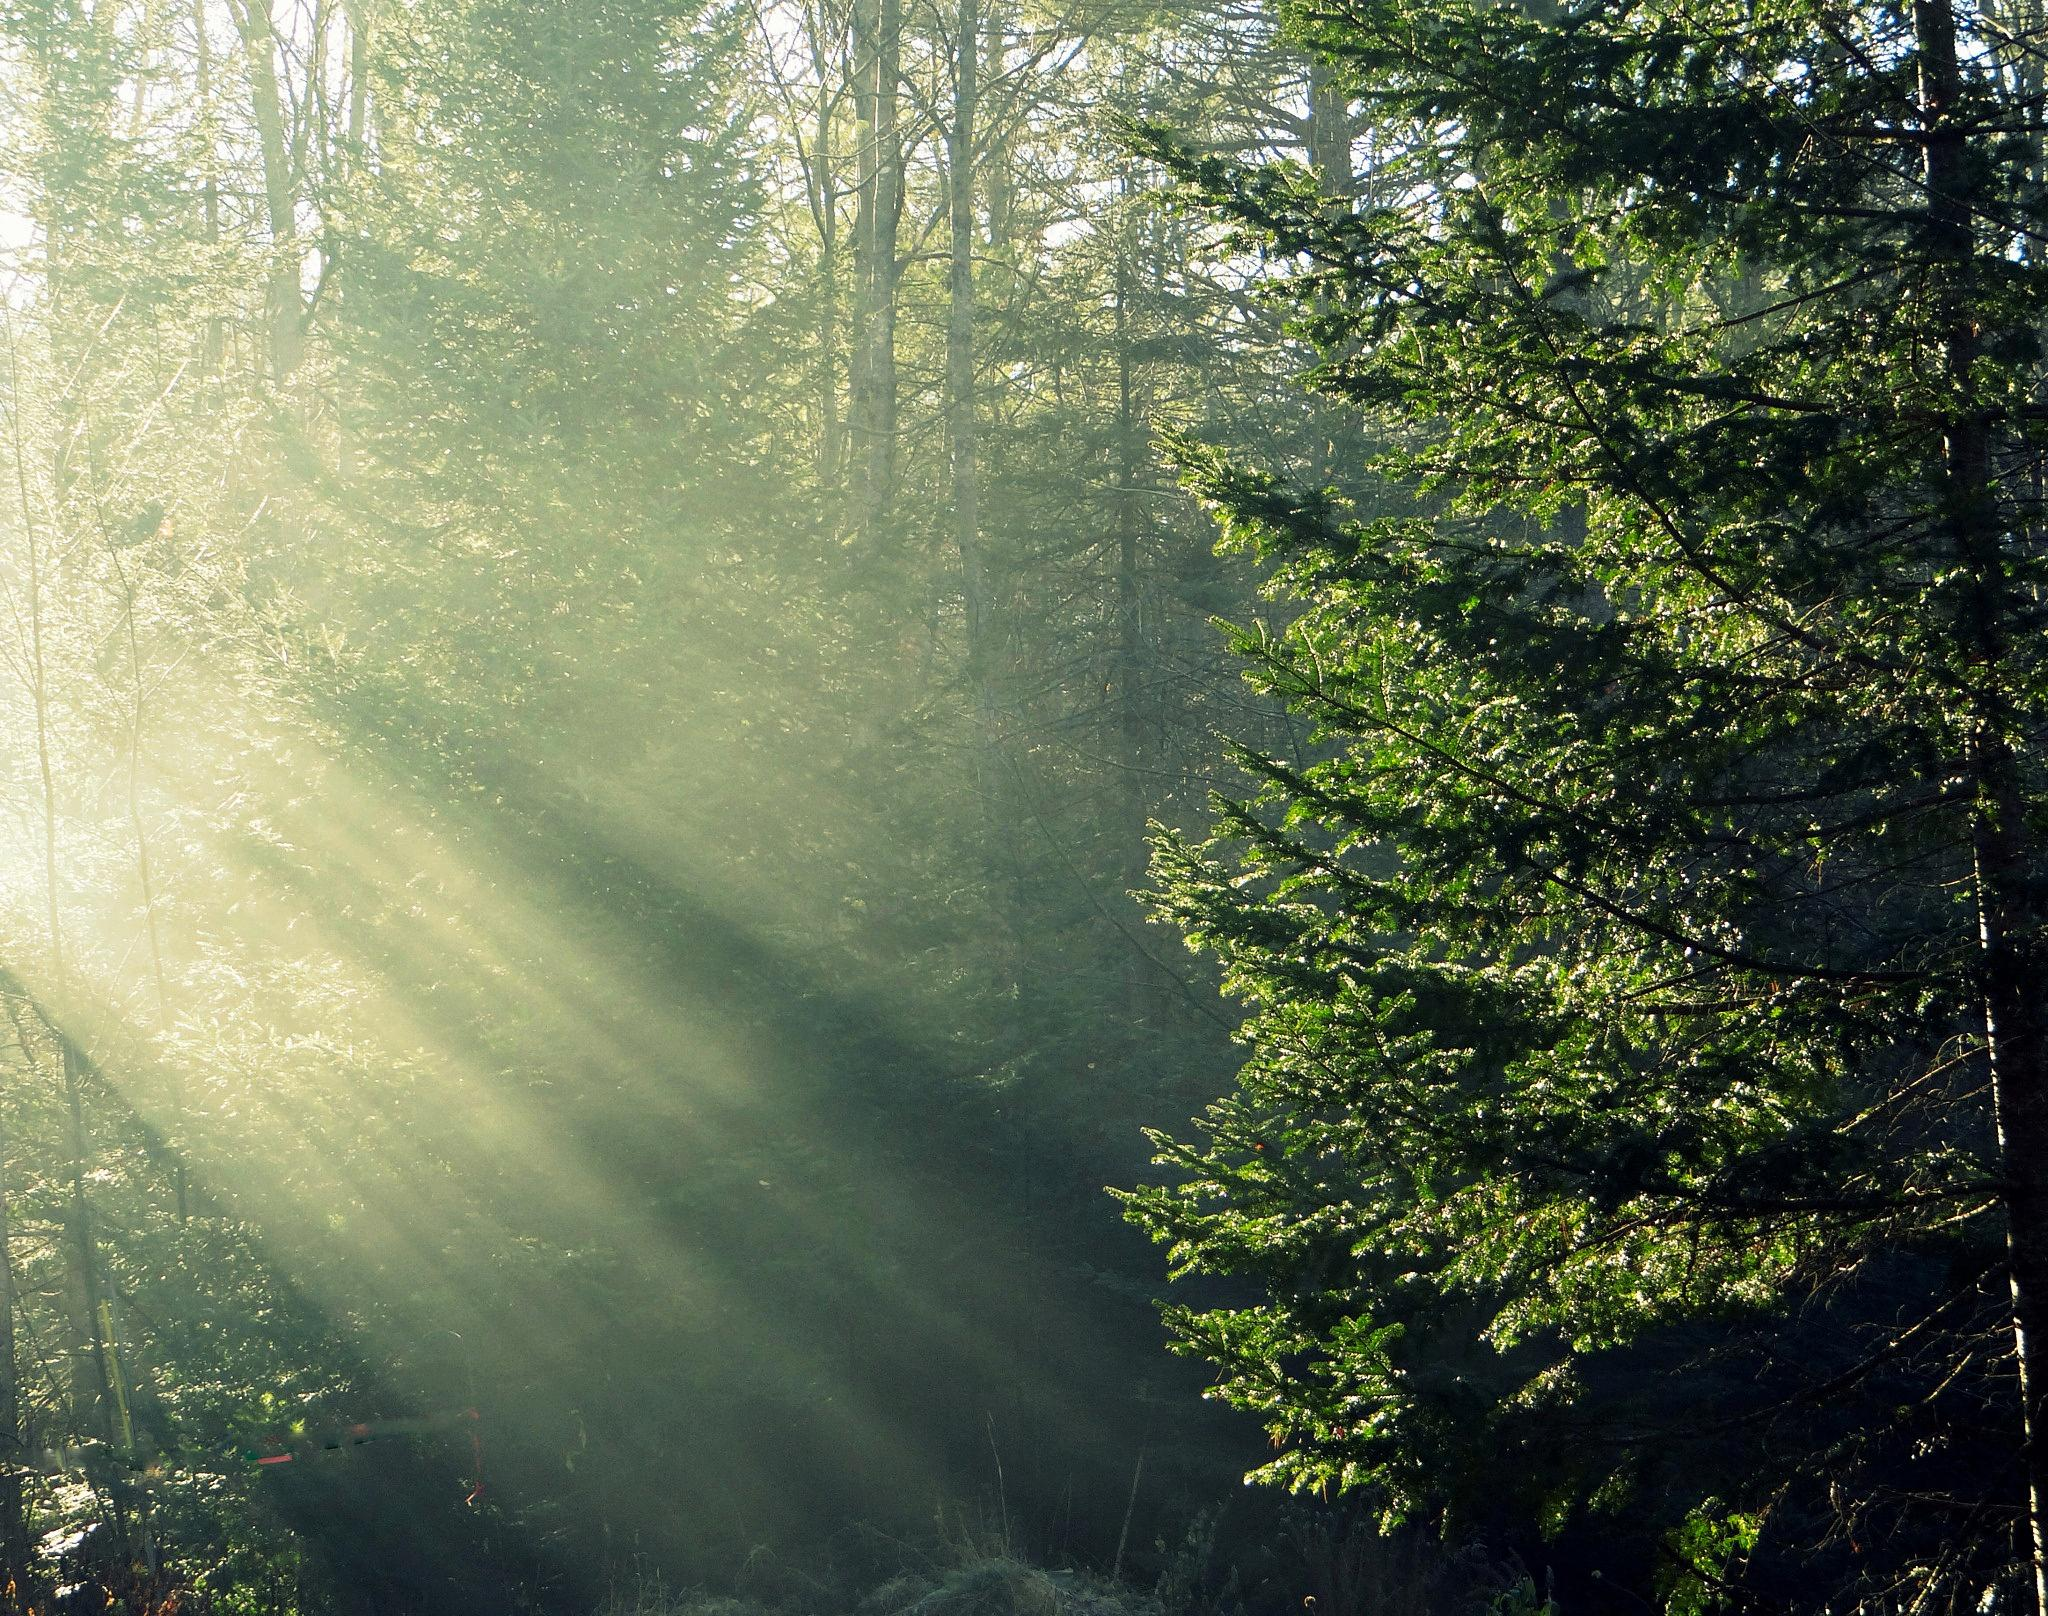 Morning Rays by paulette.king